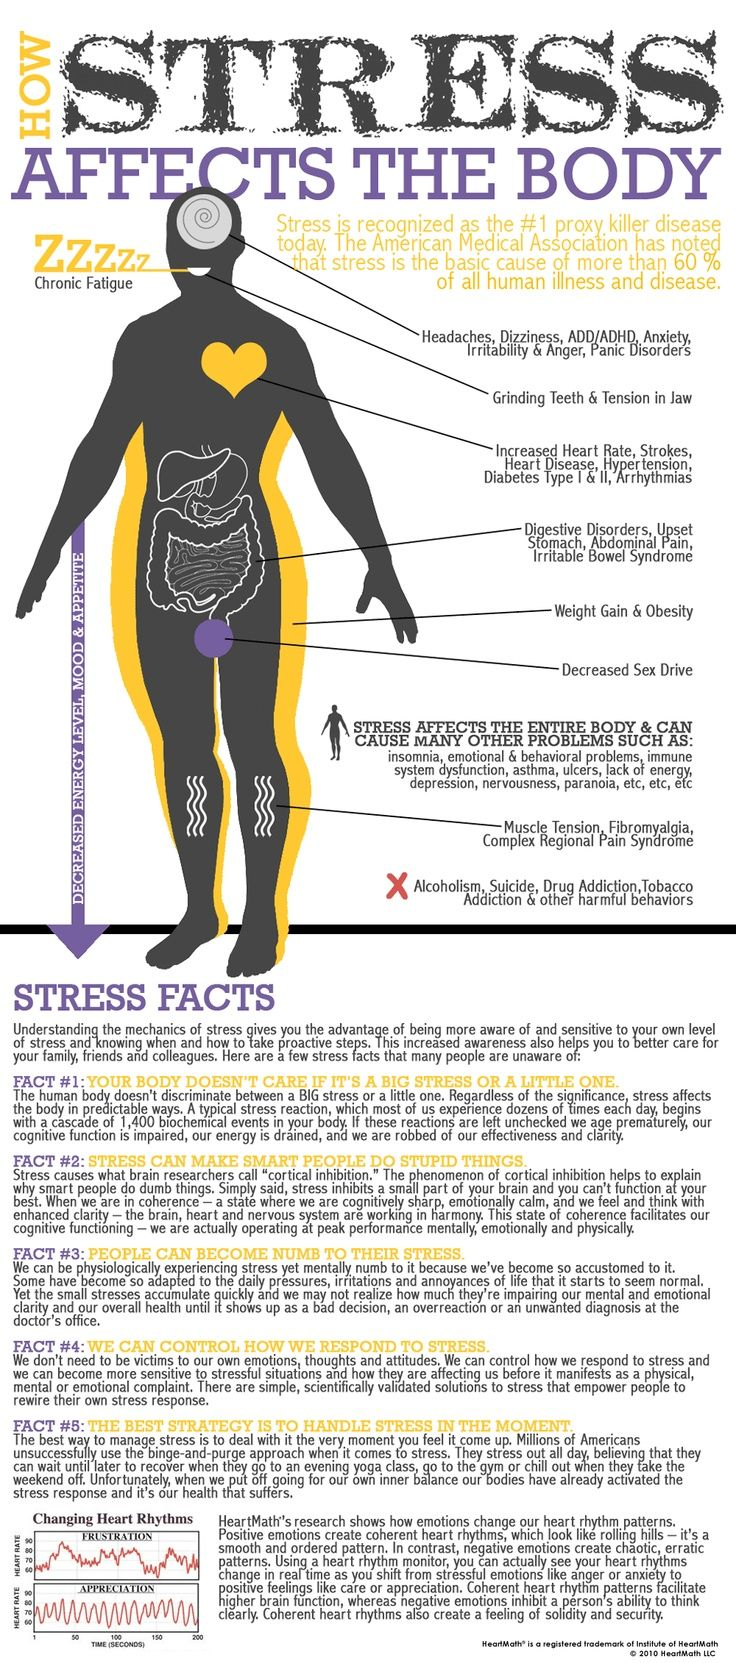 How stress affects the body. Follow us @ http://pinterest.com/stylecraze/health-and-wellness/  for more updates.